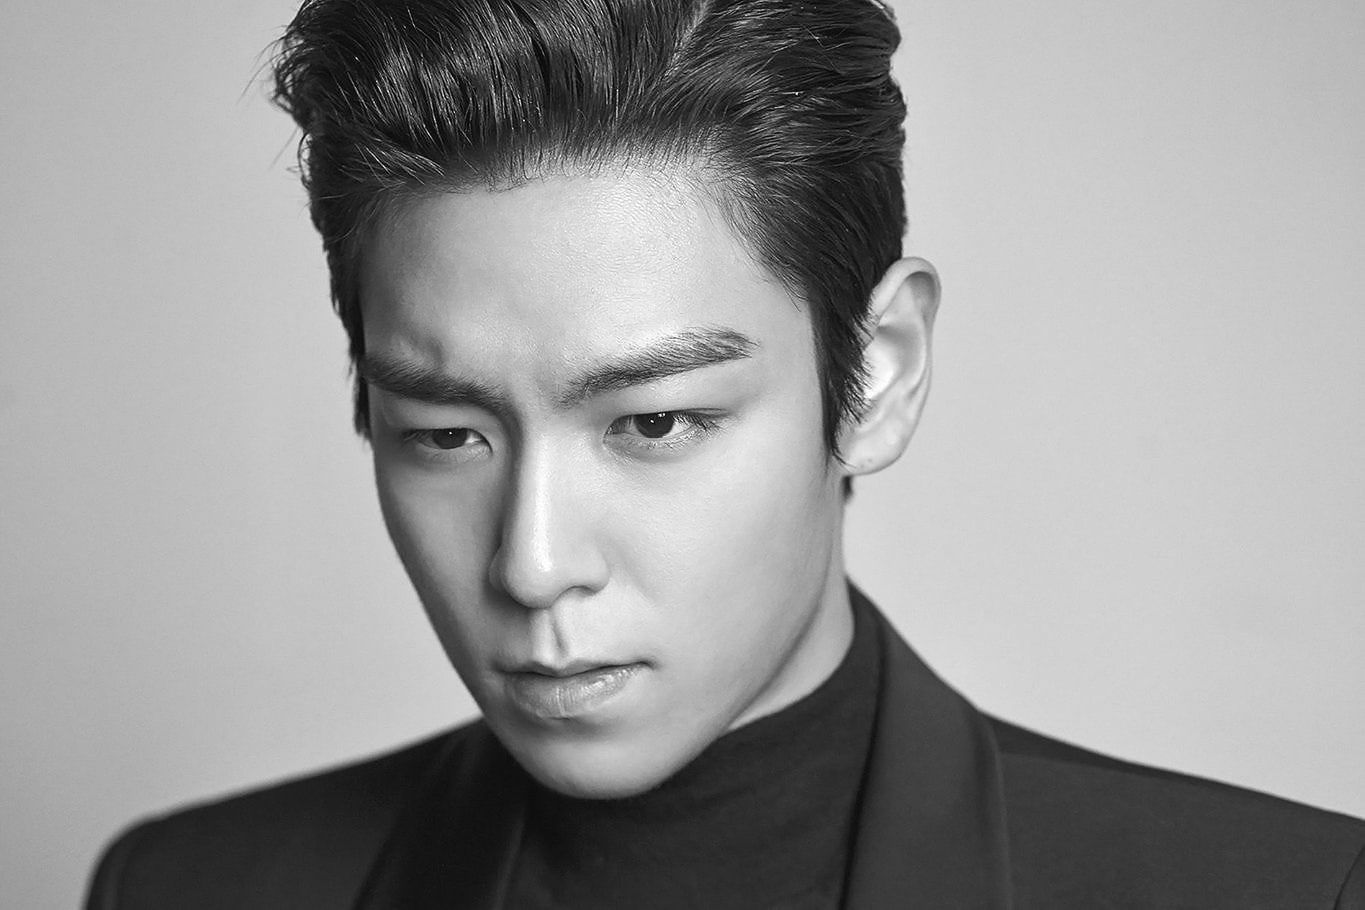 MBC Reports Suspicions Of BIGBANG's T.O.P Receiving Special Treatment During Military Service + YG And Yongsan District Office Respond